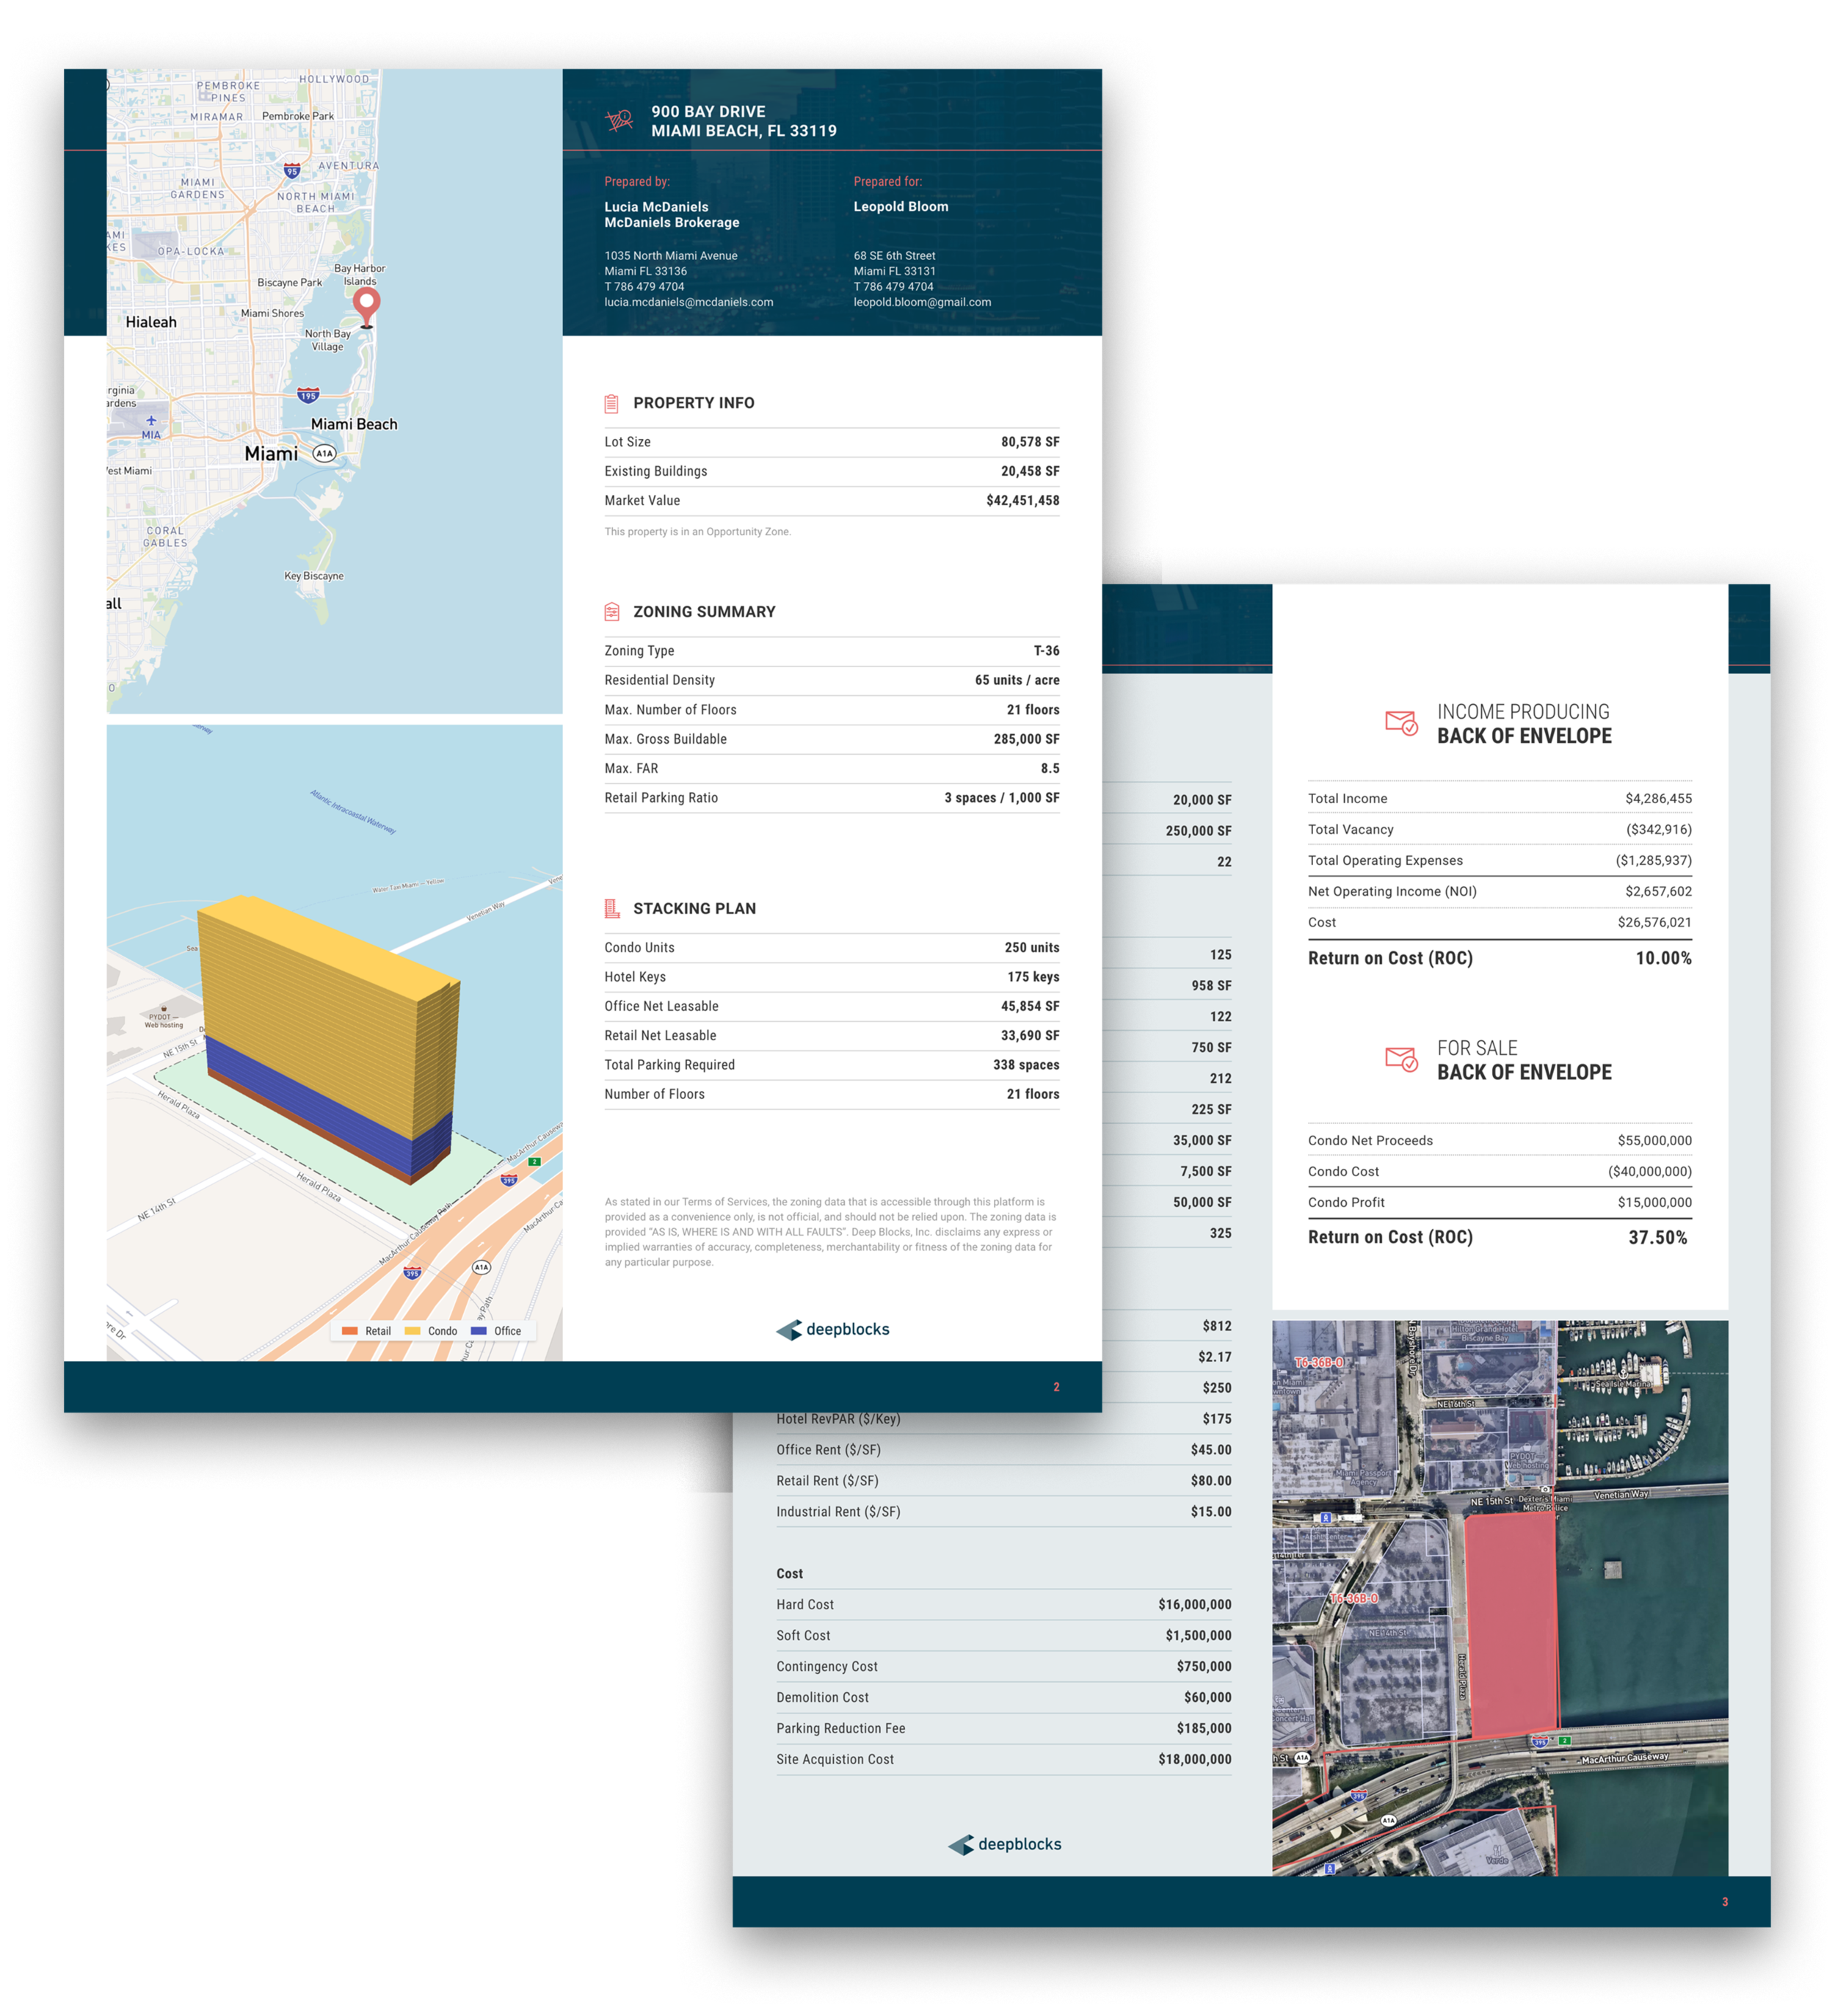 Property PDF Report, which includes a location map for the property, a stacking plan with legend, property info, list of assumptions, back of envelope calculation, and zoomed-in location map in satellite view.